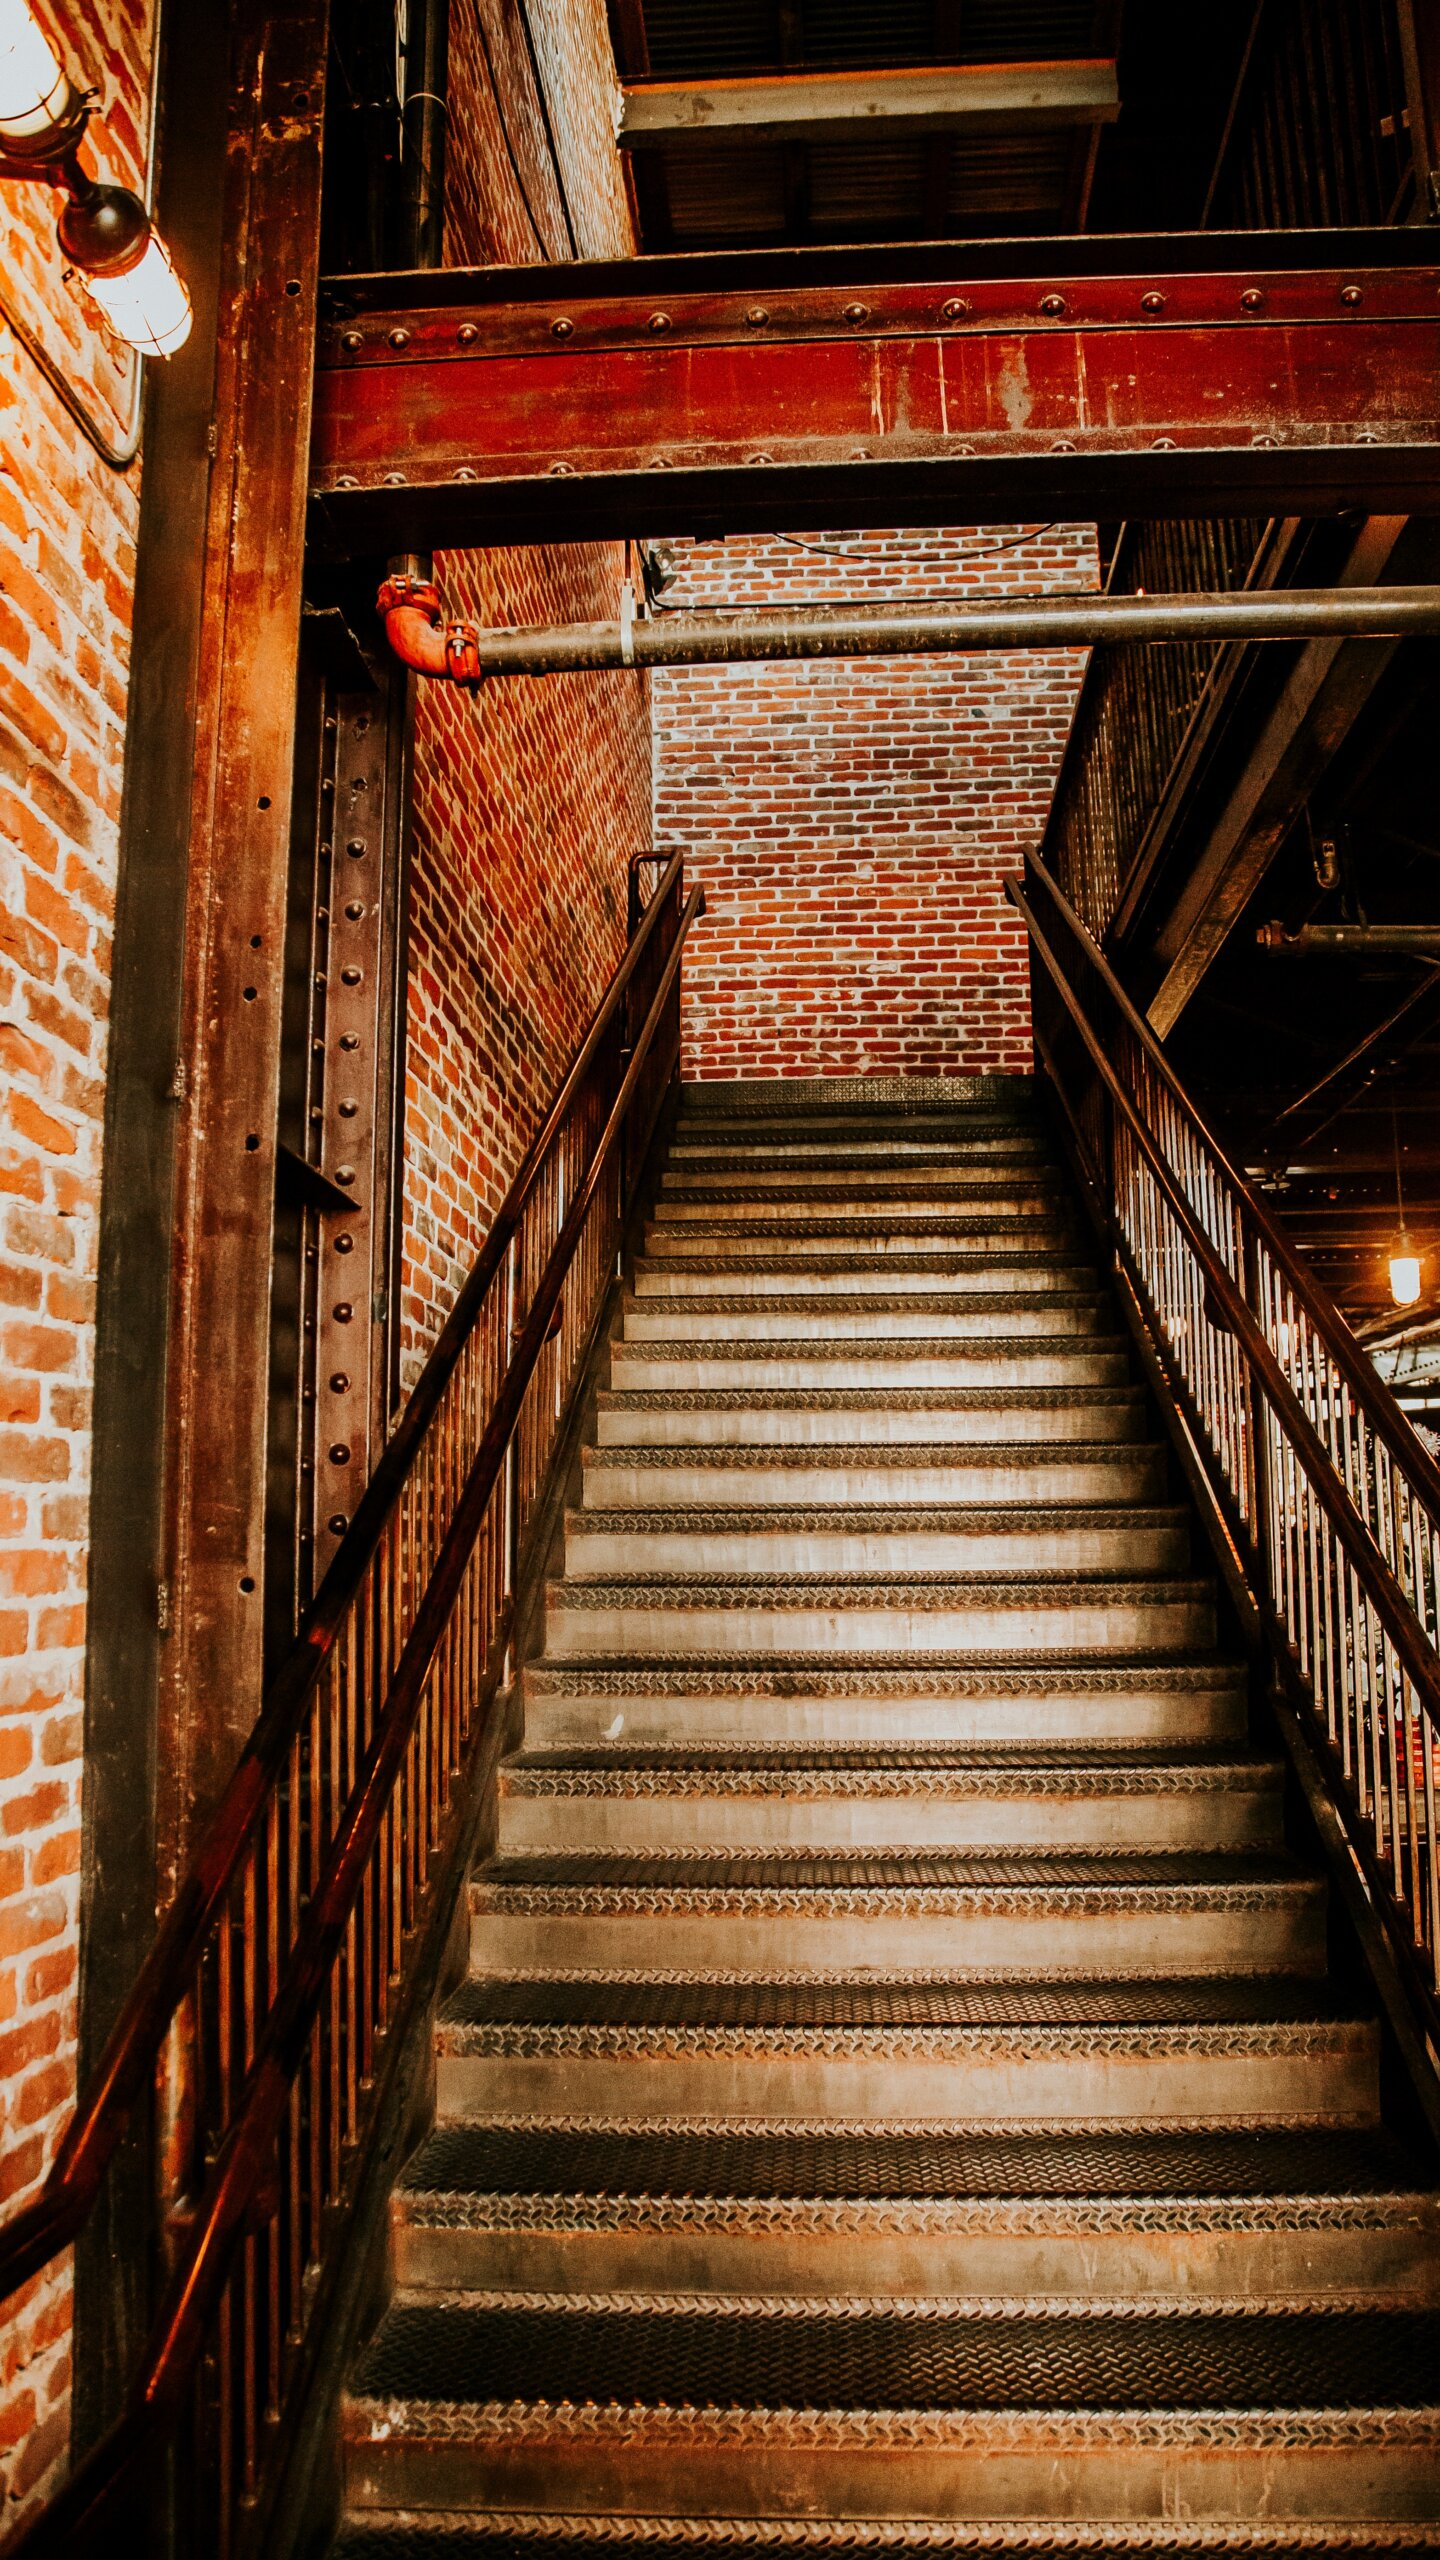 Mile High Station Event Venue Denver Stairs resized scaled